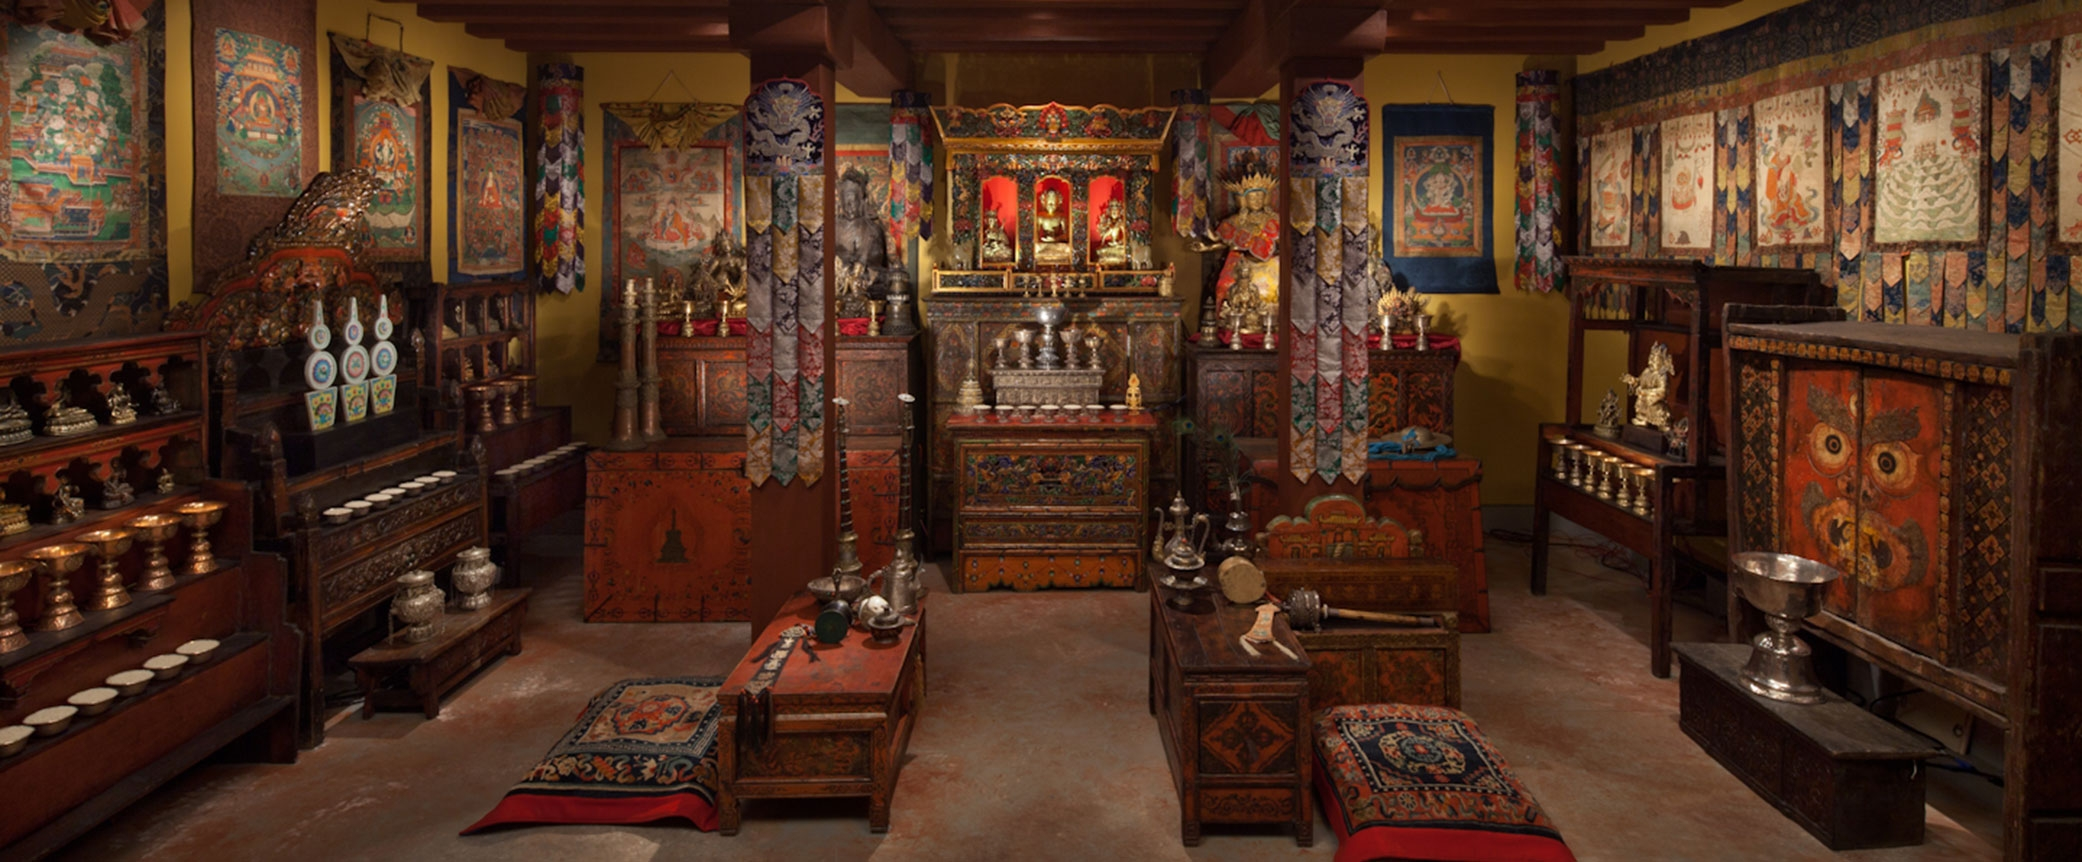 The Rubin Museum Is Crowdfunding to Expand Its Shrine Room ARTnews